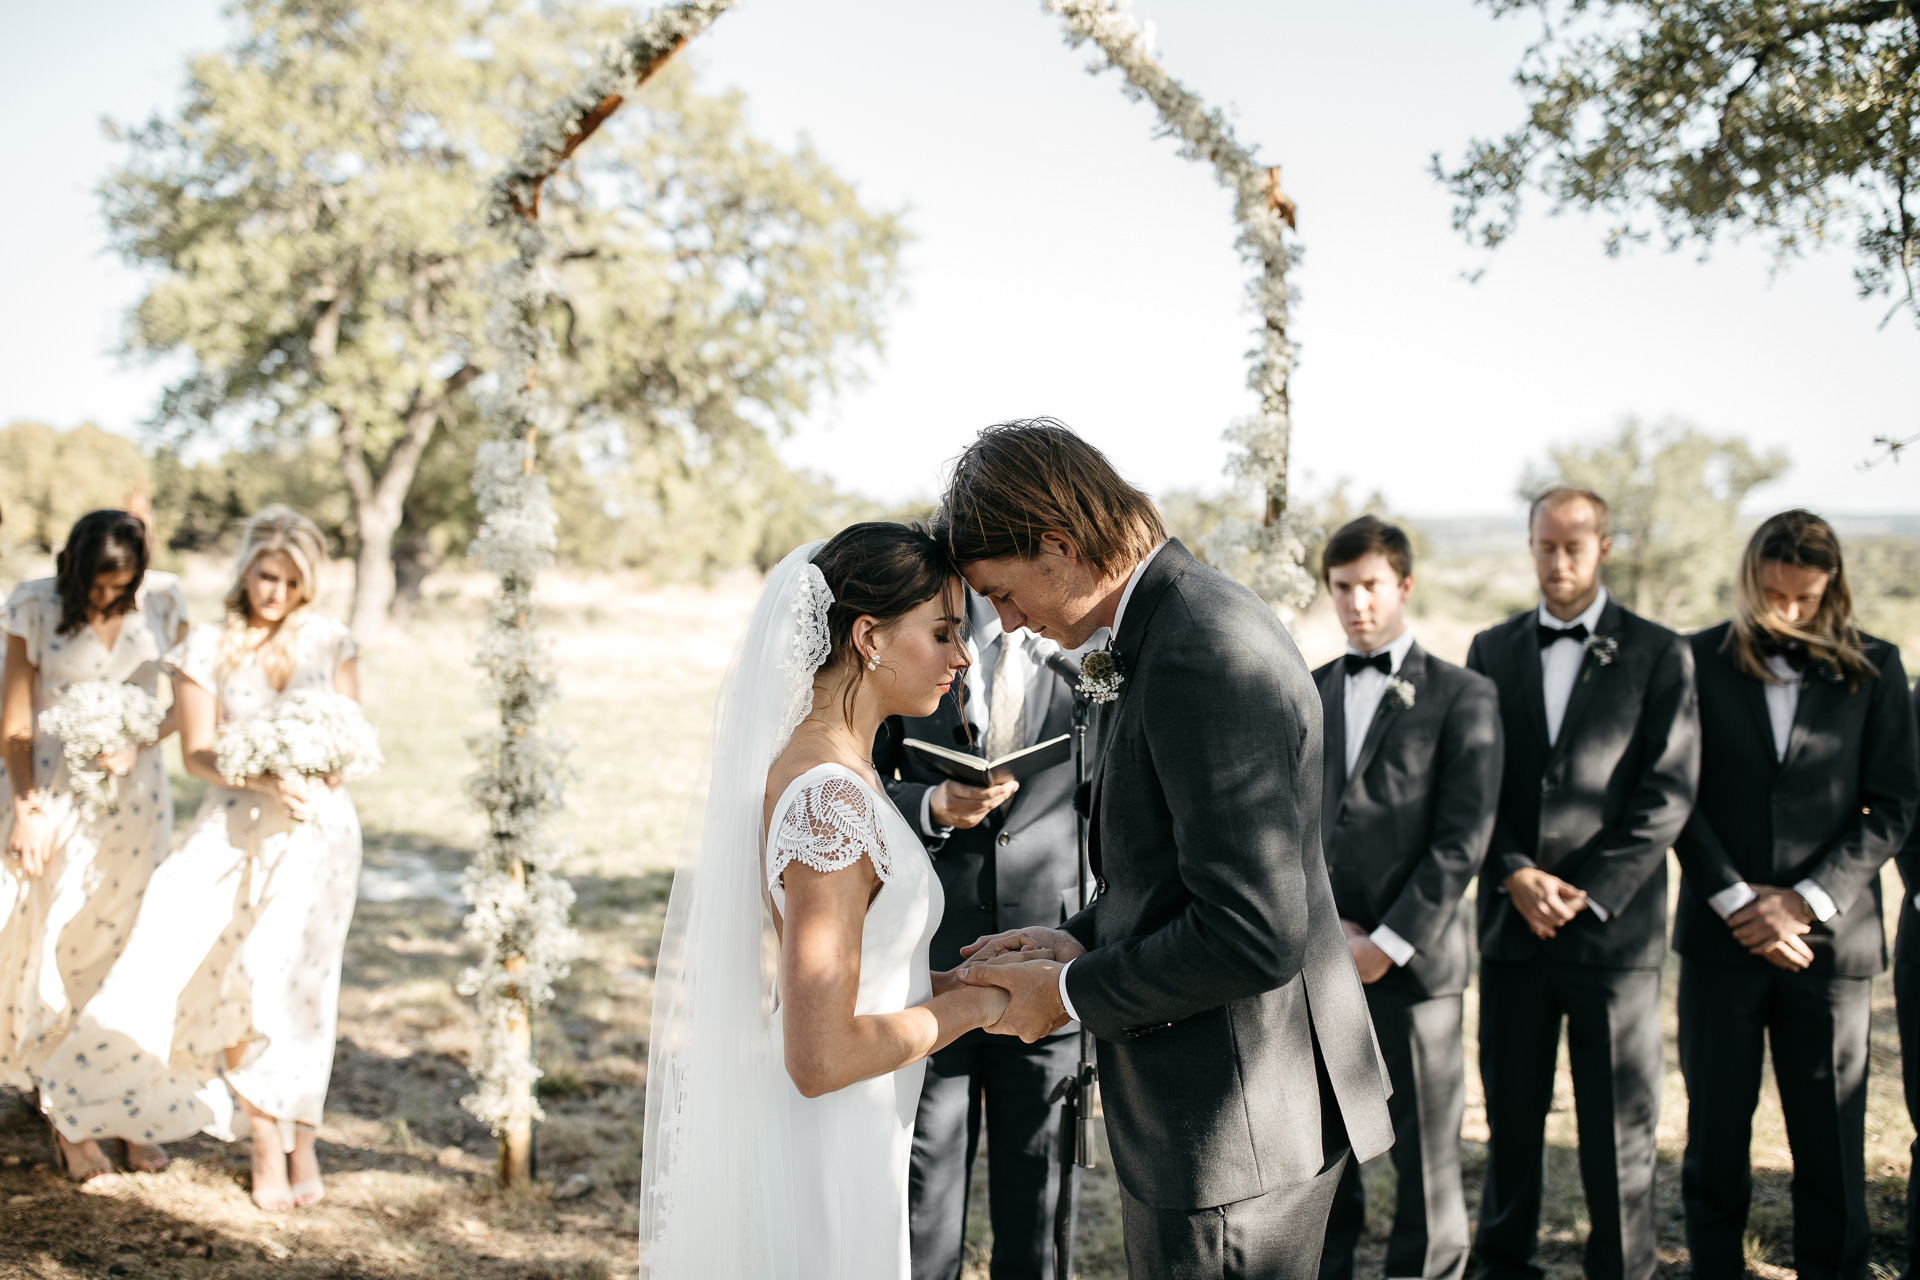 Texas Wedding Photographer . Kate and Luke's Wedding in Hunt, Texas by Jean-Laurent Gaudy